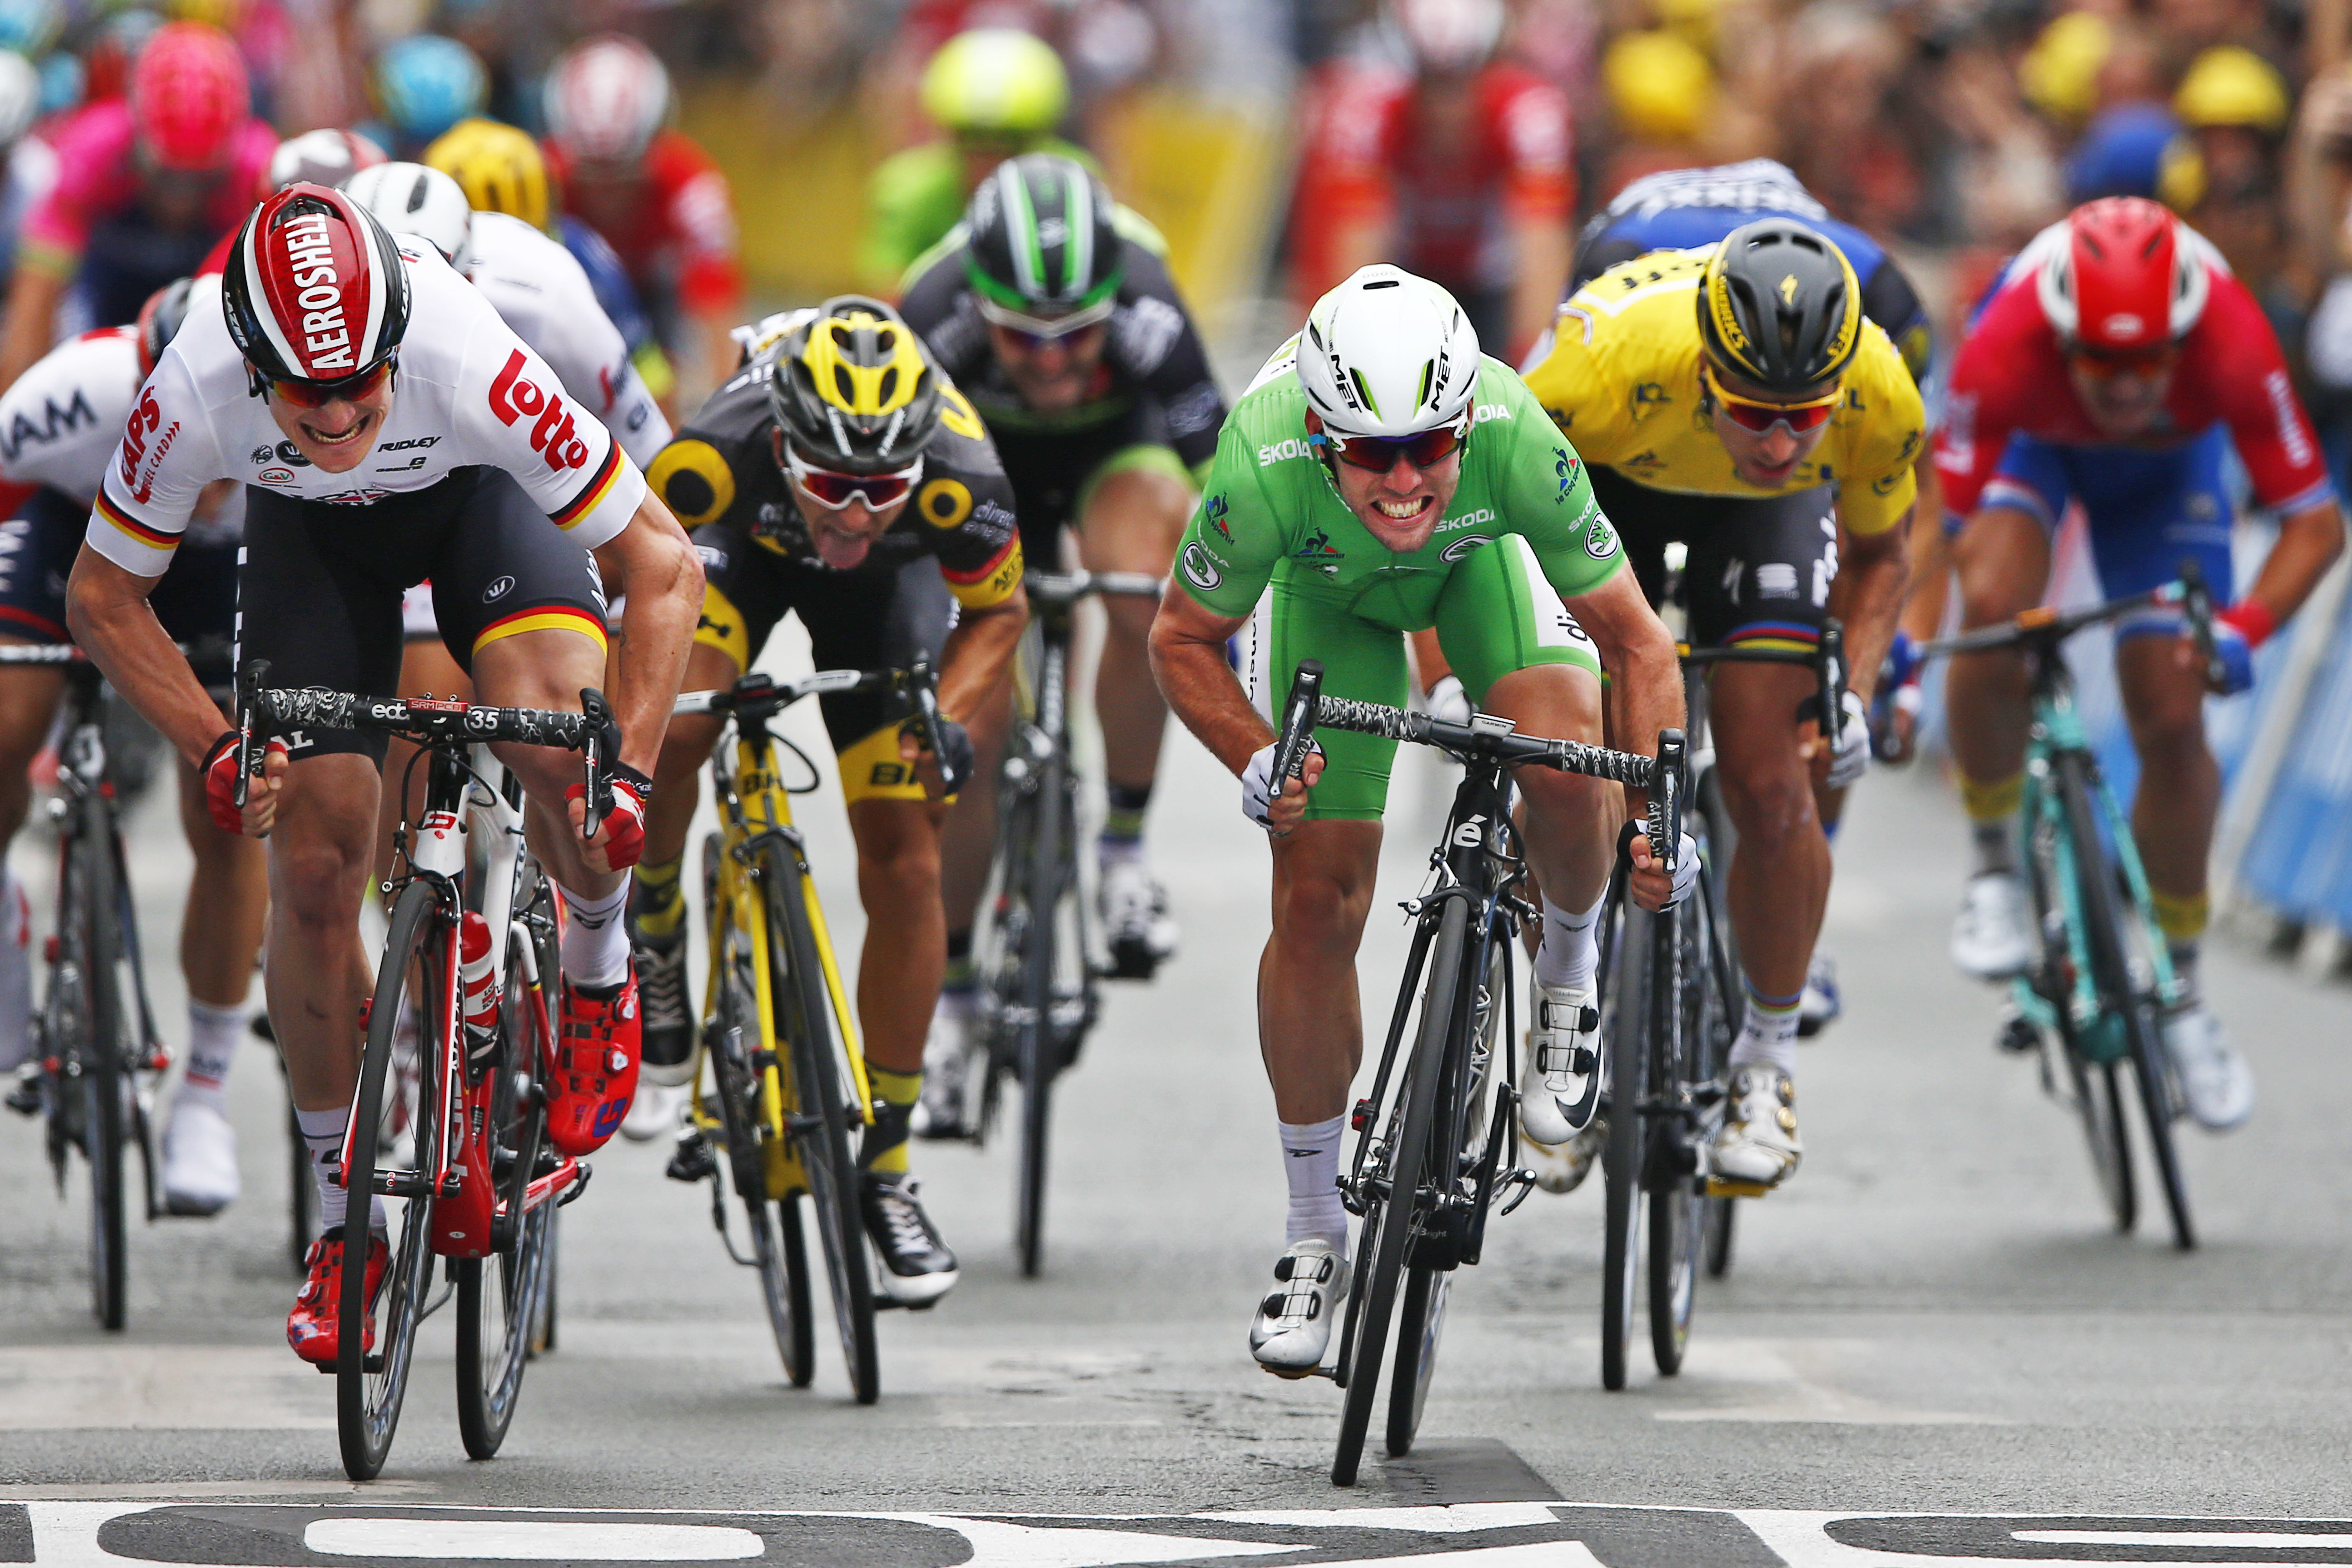 FILE - In this July 4, 2016, file photo, Britain's Mark Cavendish, wearing the best sprinter's green jersey, crosses the finish line ahead of Germany's Andre Greipel, left, and Peter Sagan of Slovakia, wearing the overall leader's yellow jersey, to win th